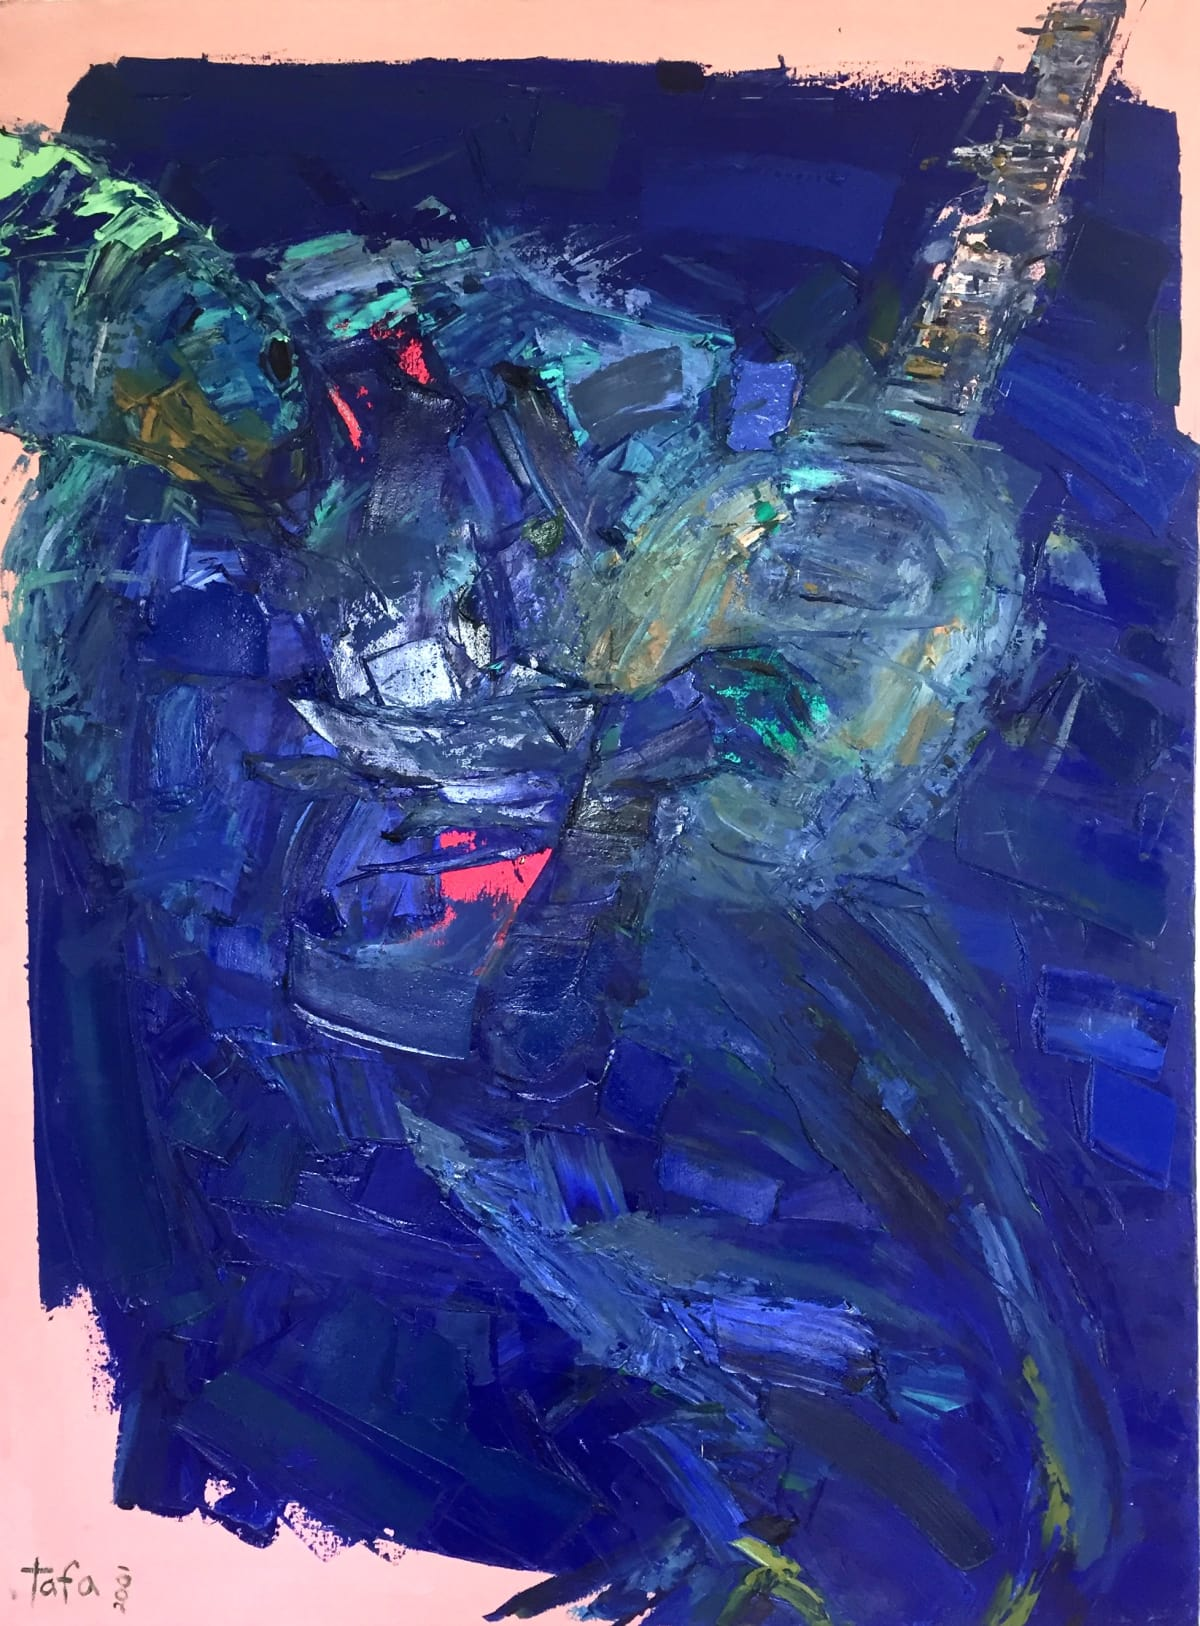 TAFA Banjo Blues III, 2001.0 Oil, Acrylic on Canvas 40 x 29 3/4